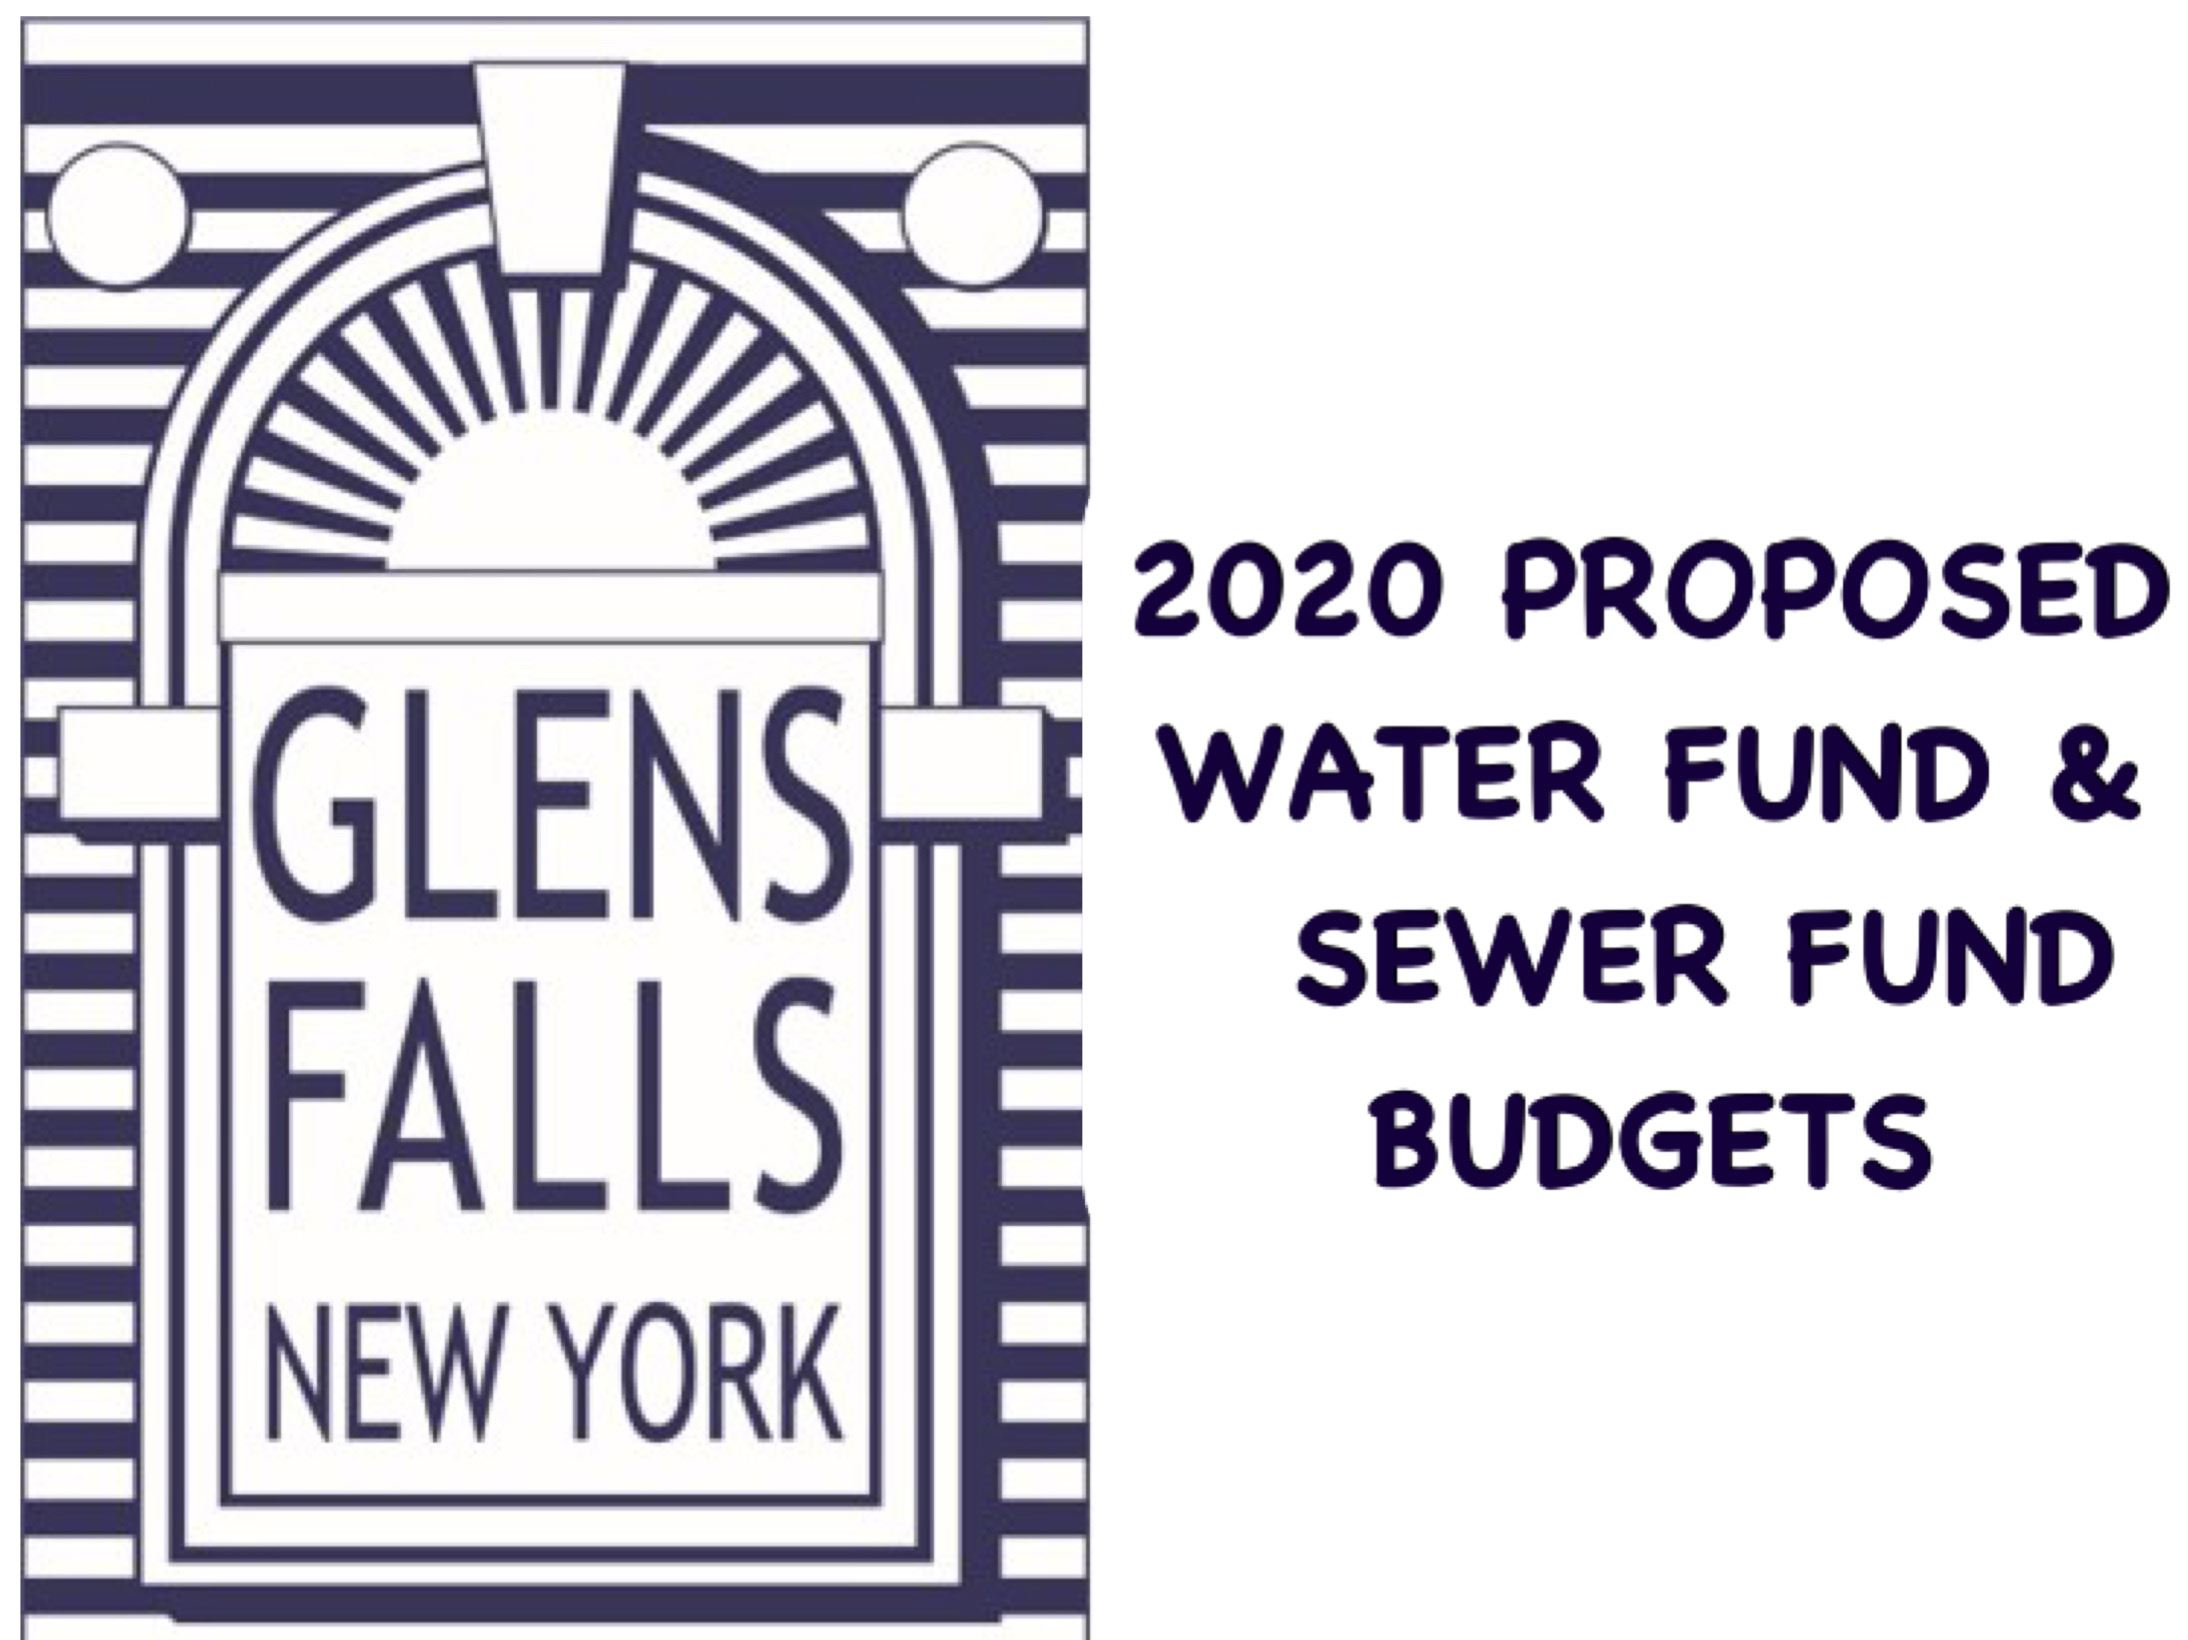 Water and Sewer Fund Budgets 2020